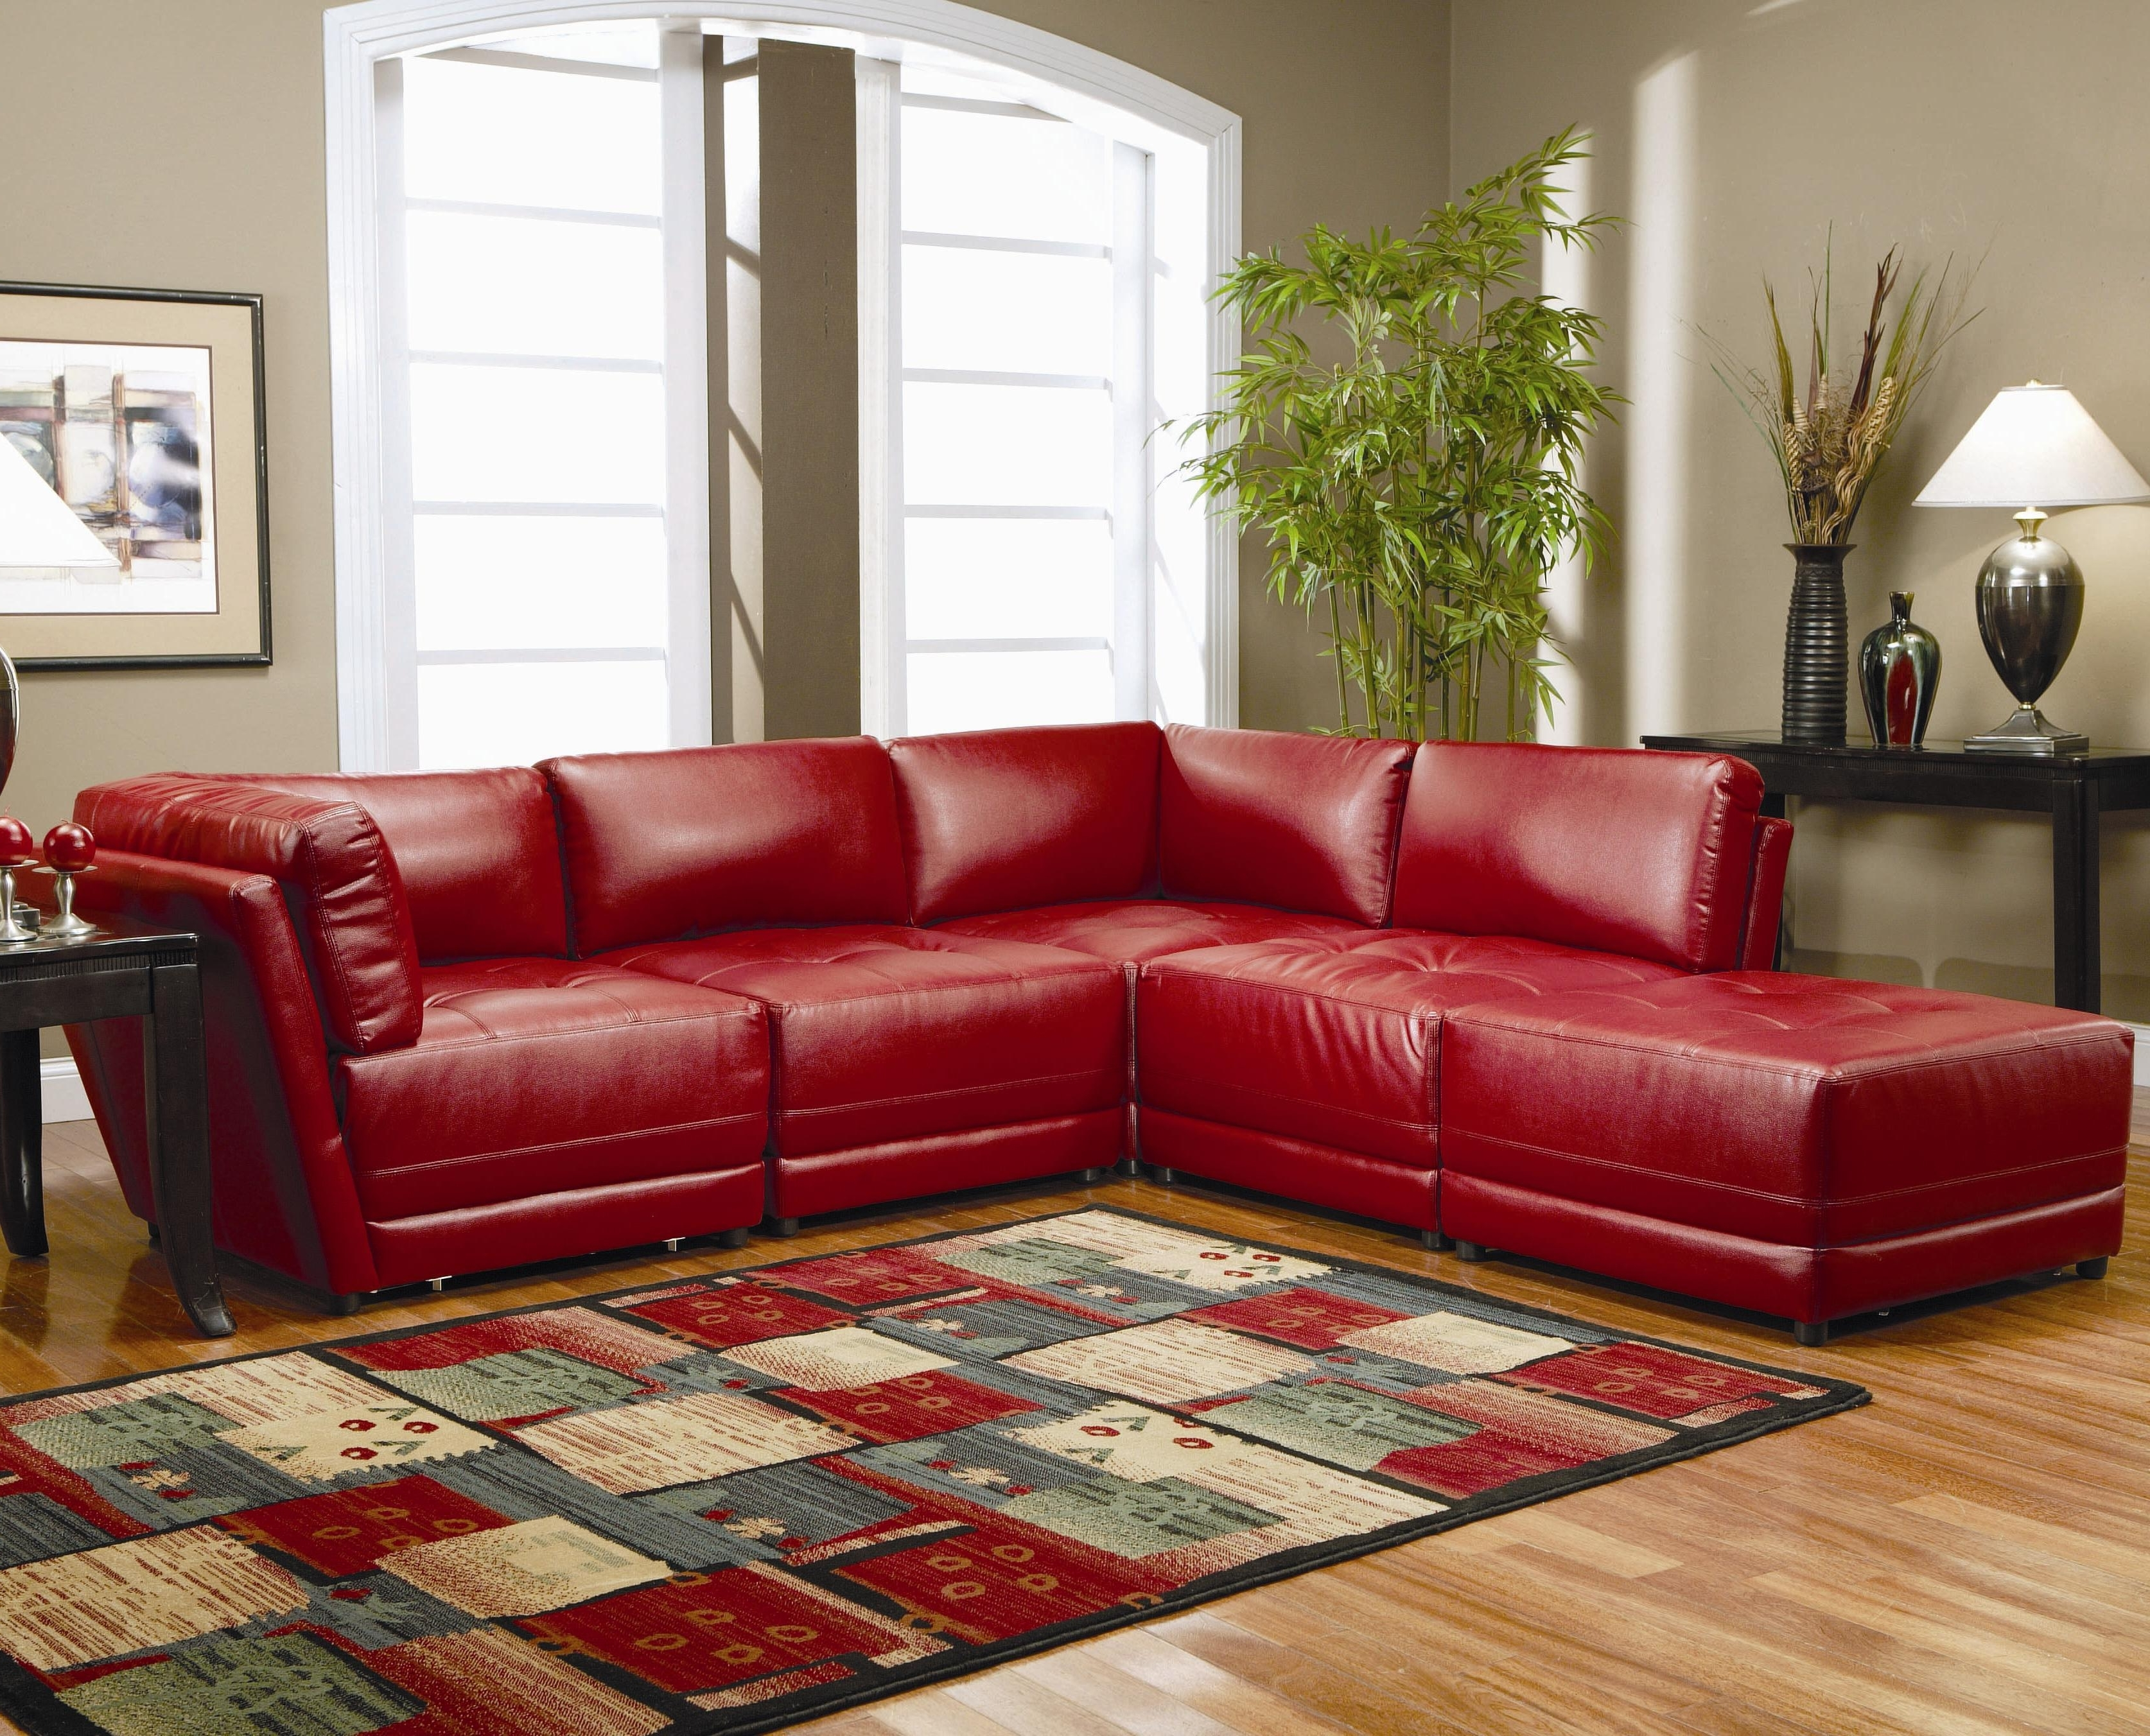 Latest Warm Red Leather Sectional L Shaped Sofa Design Ideas For Living In Red Leather Couches For Living Room (View 8 of 15)